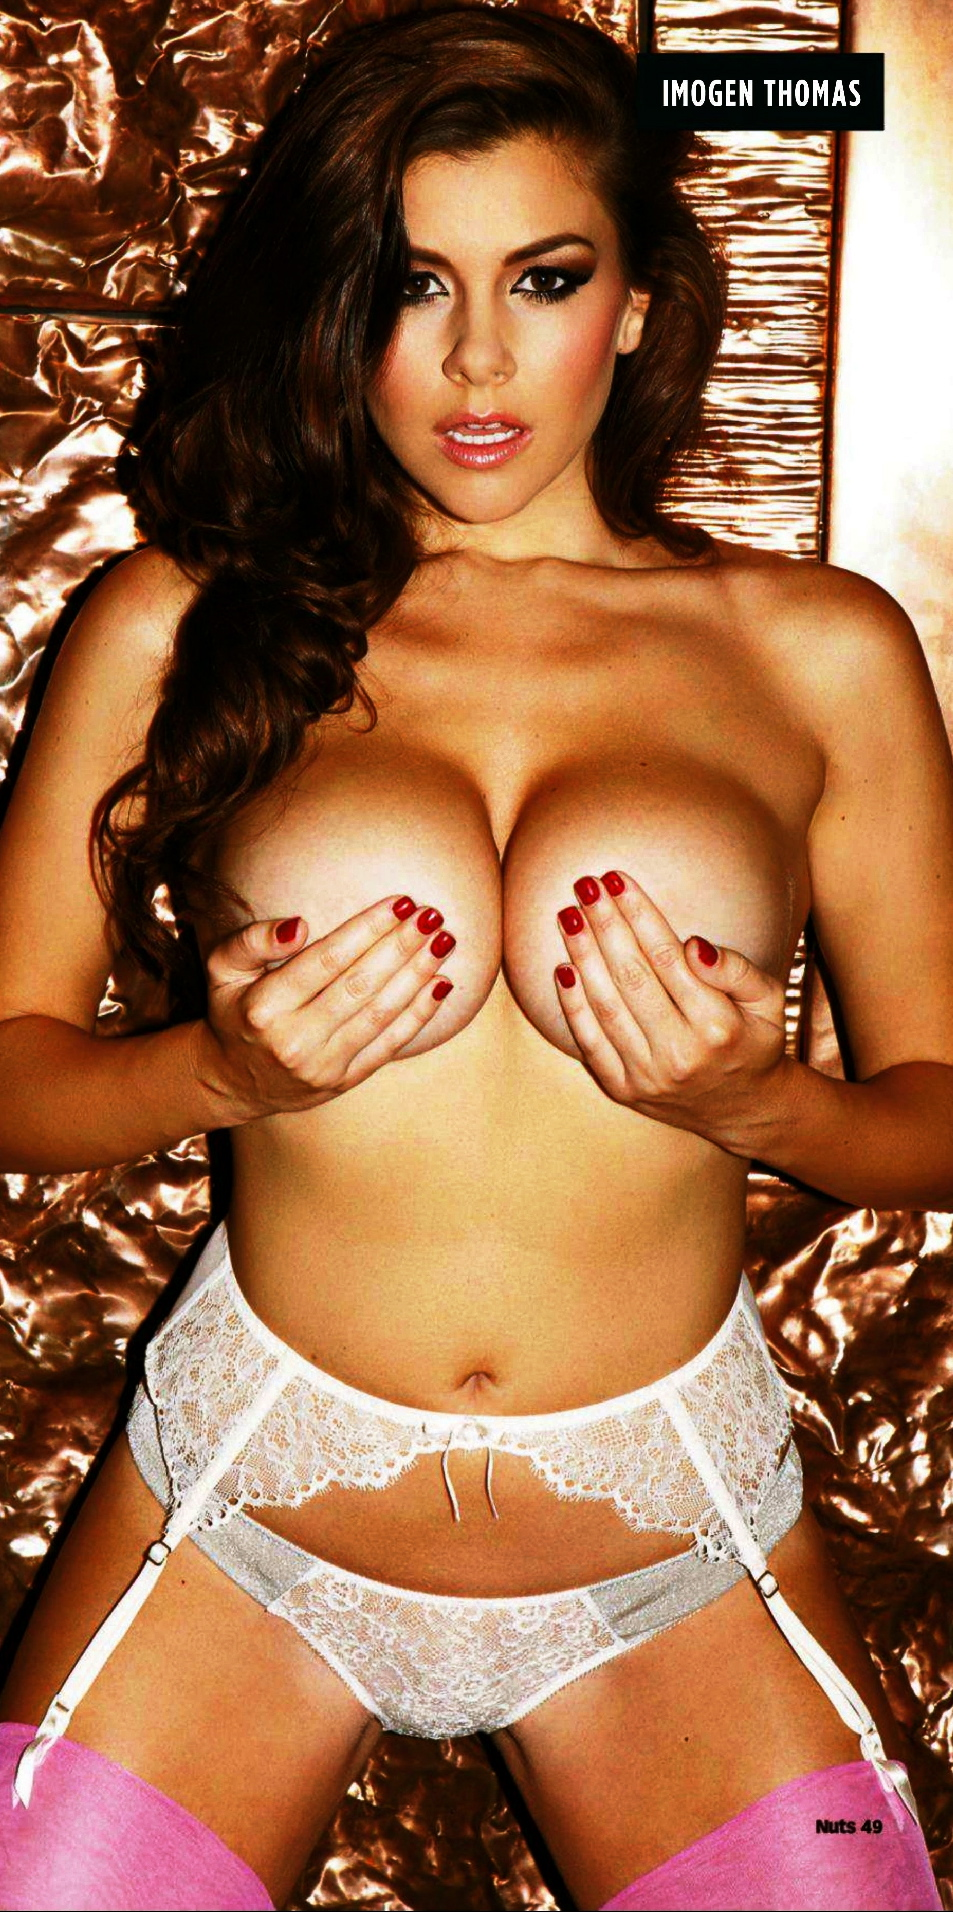 Cheap escort manchester